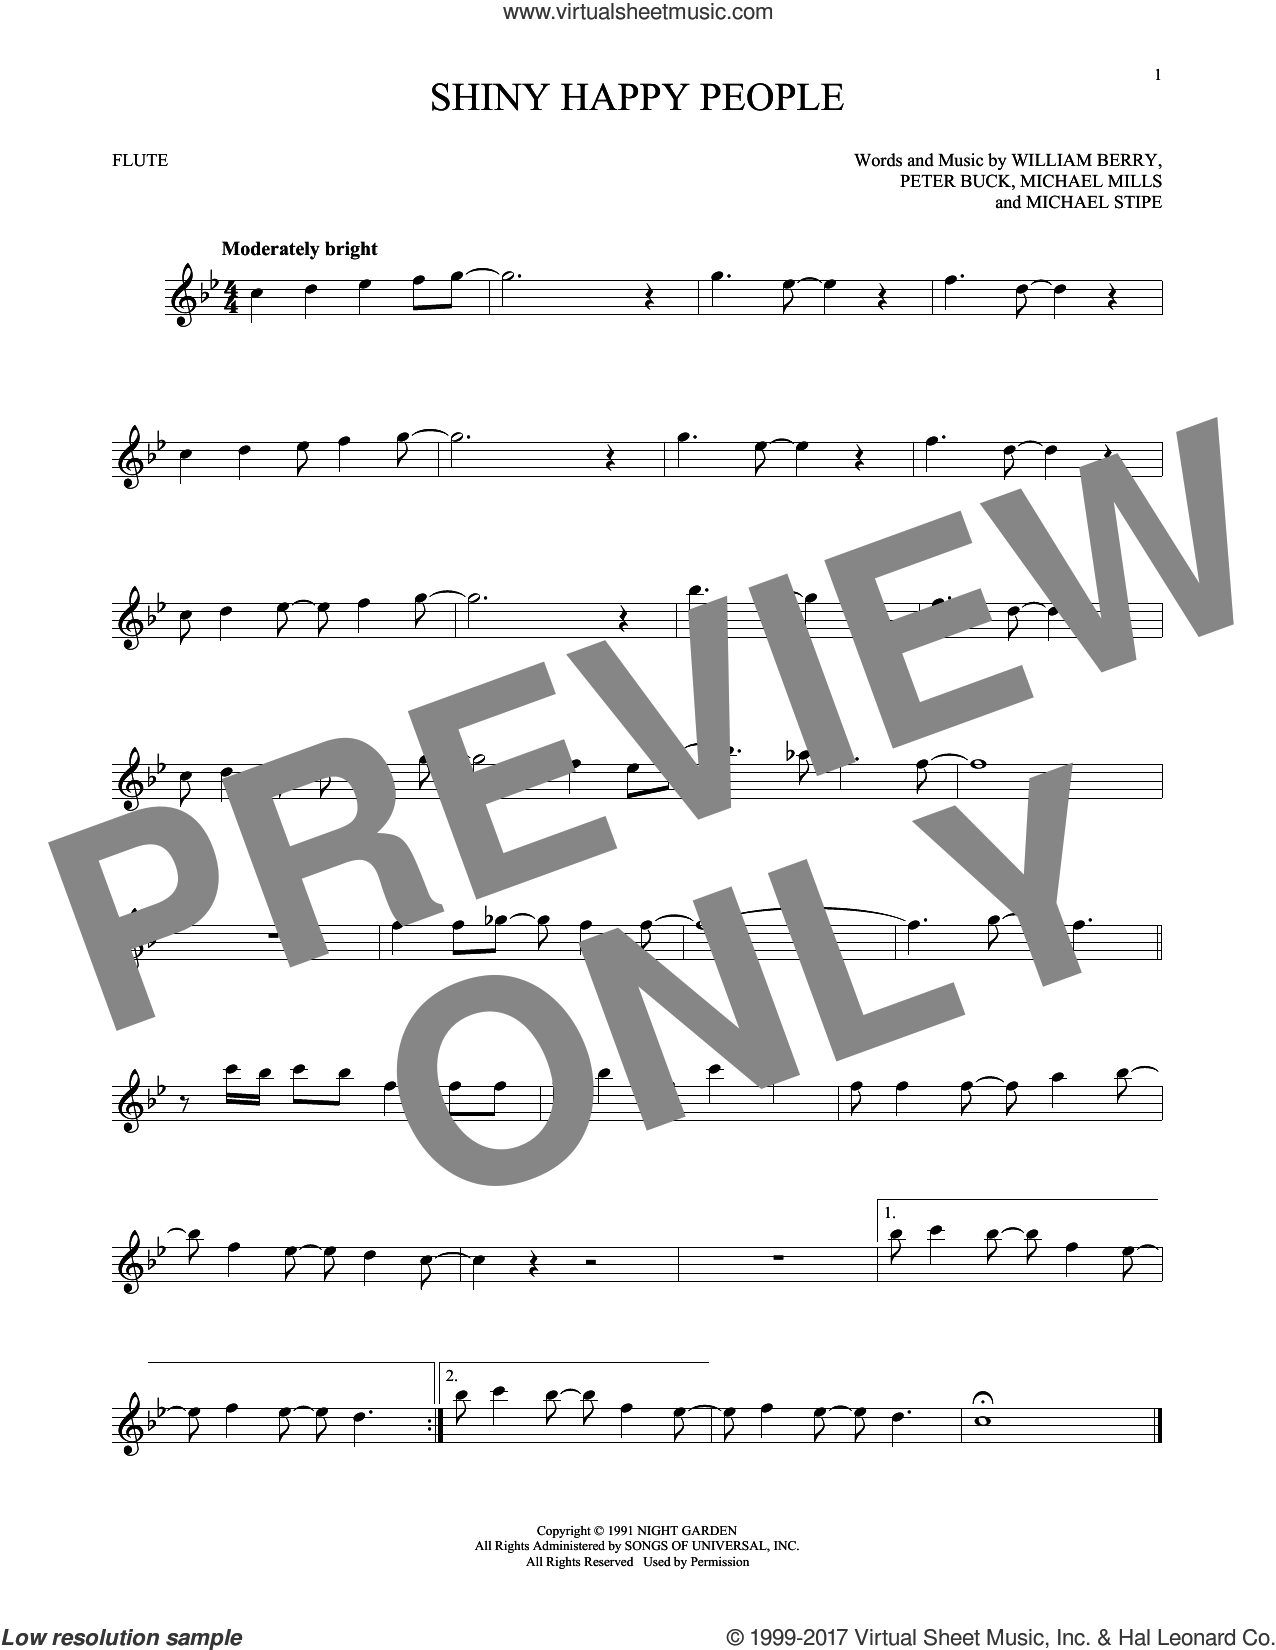 Shiny Happy People sheet music for flute solo by R.E.M., Michael Stipe, Mike Mills, Peter Buck and William Berry, intermediate skill level